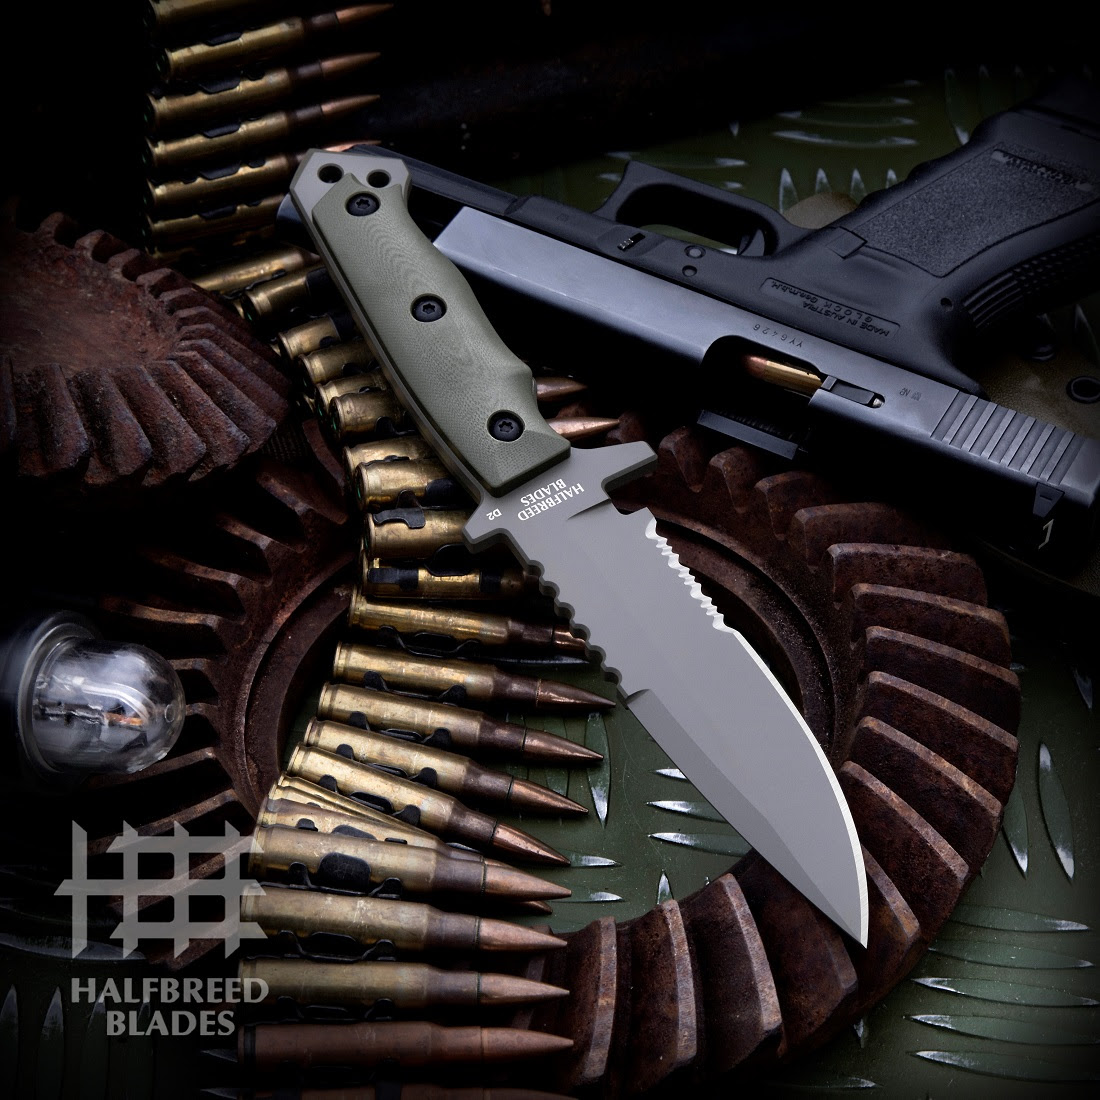 Halfbreed Blades Introduces the MIK-03 Medium Infantry Knife